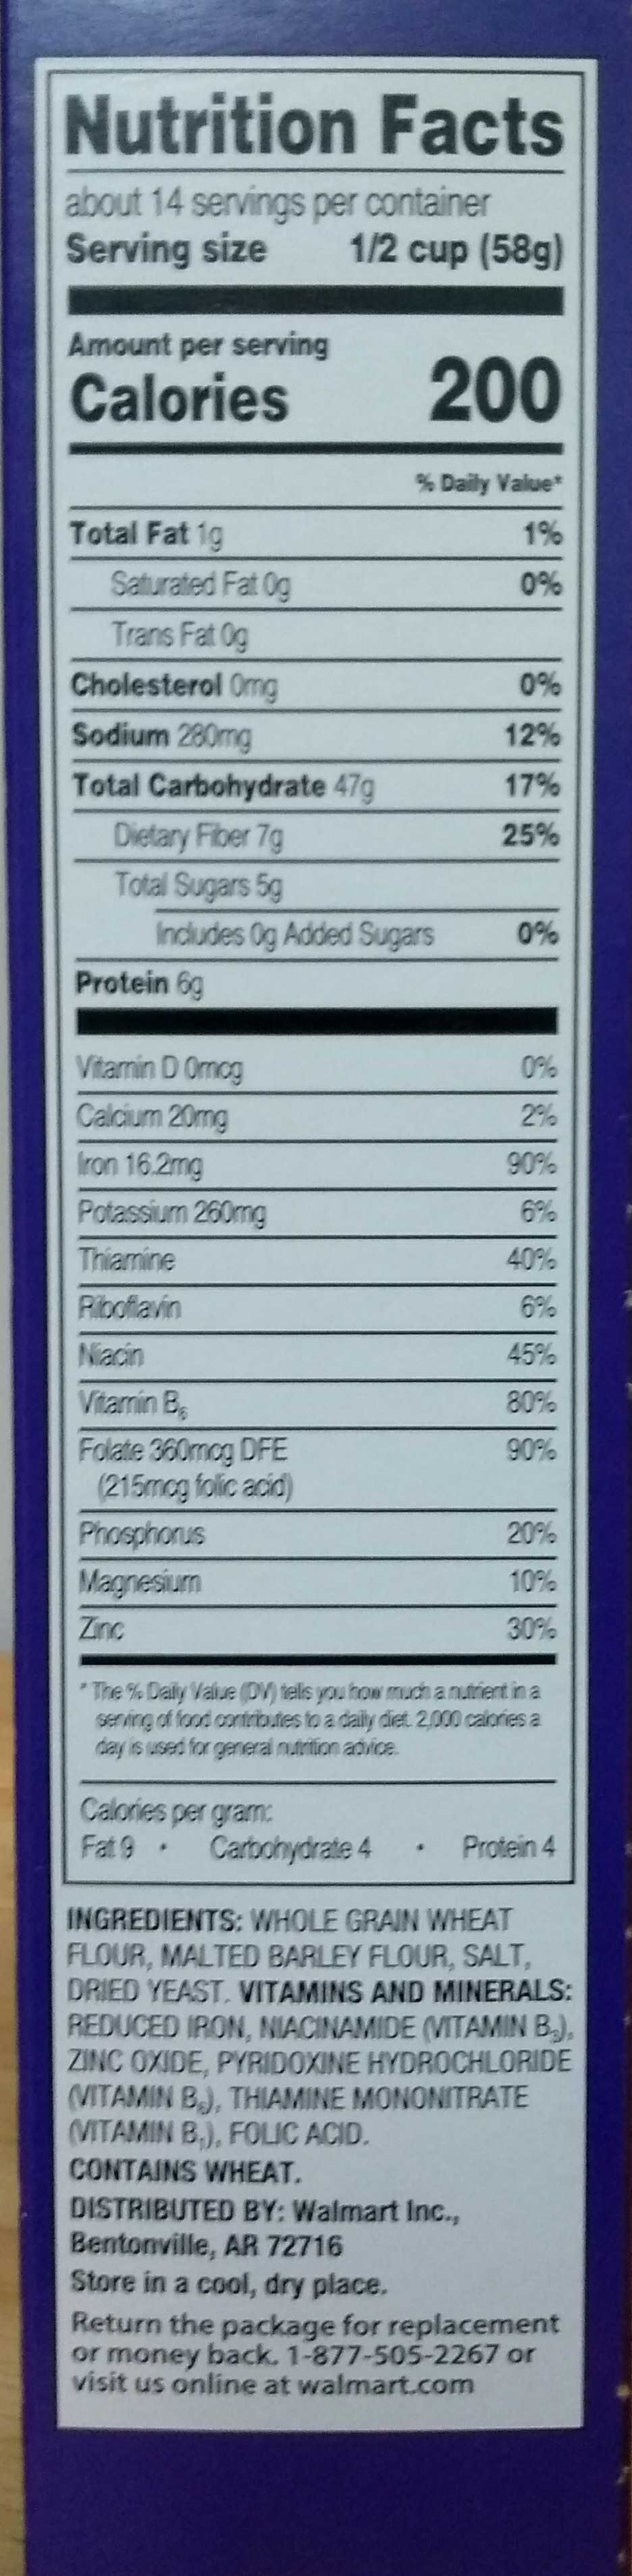 Crunchy Nuggets - Nutrition facts